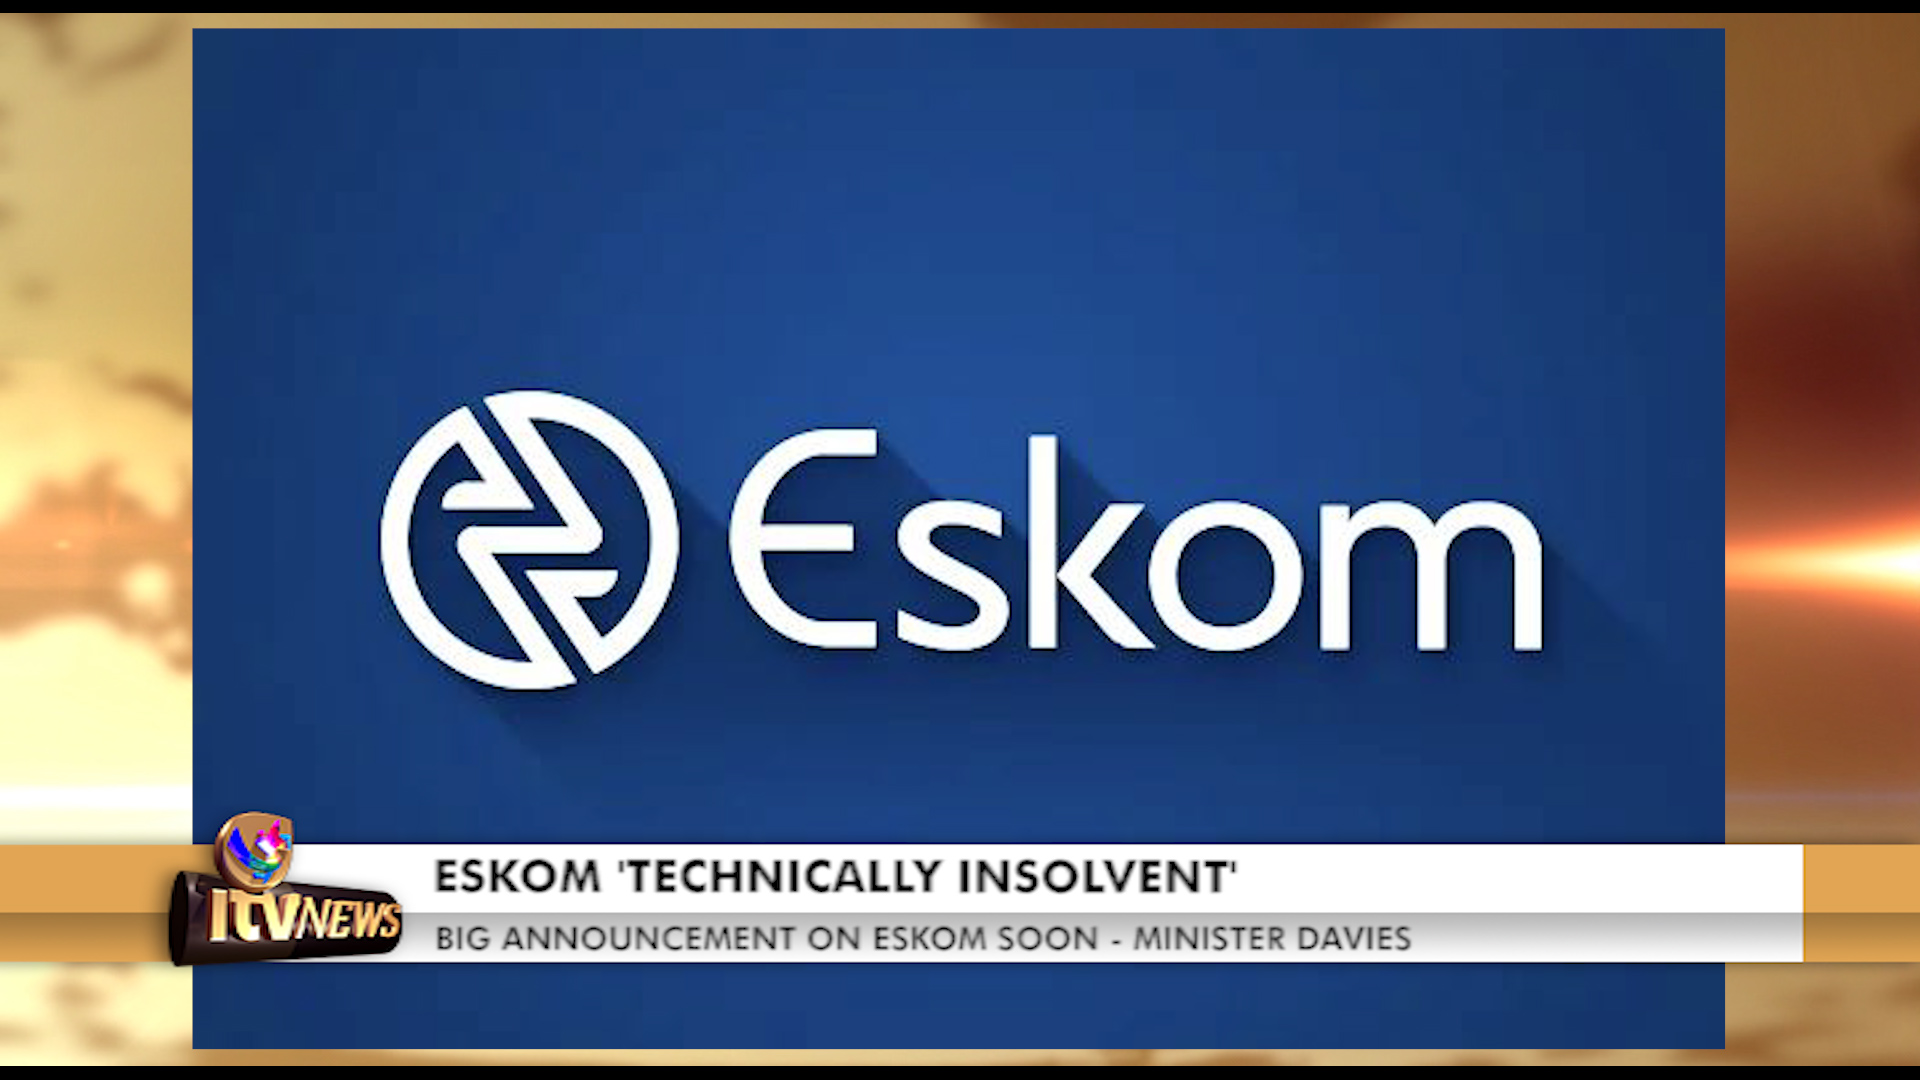 ITV Networks Channel 347 - ESKOM 'TECHNICALLY INSOLVENT'